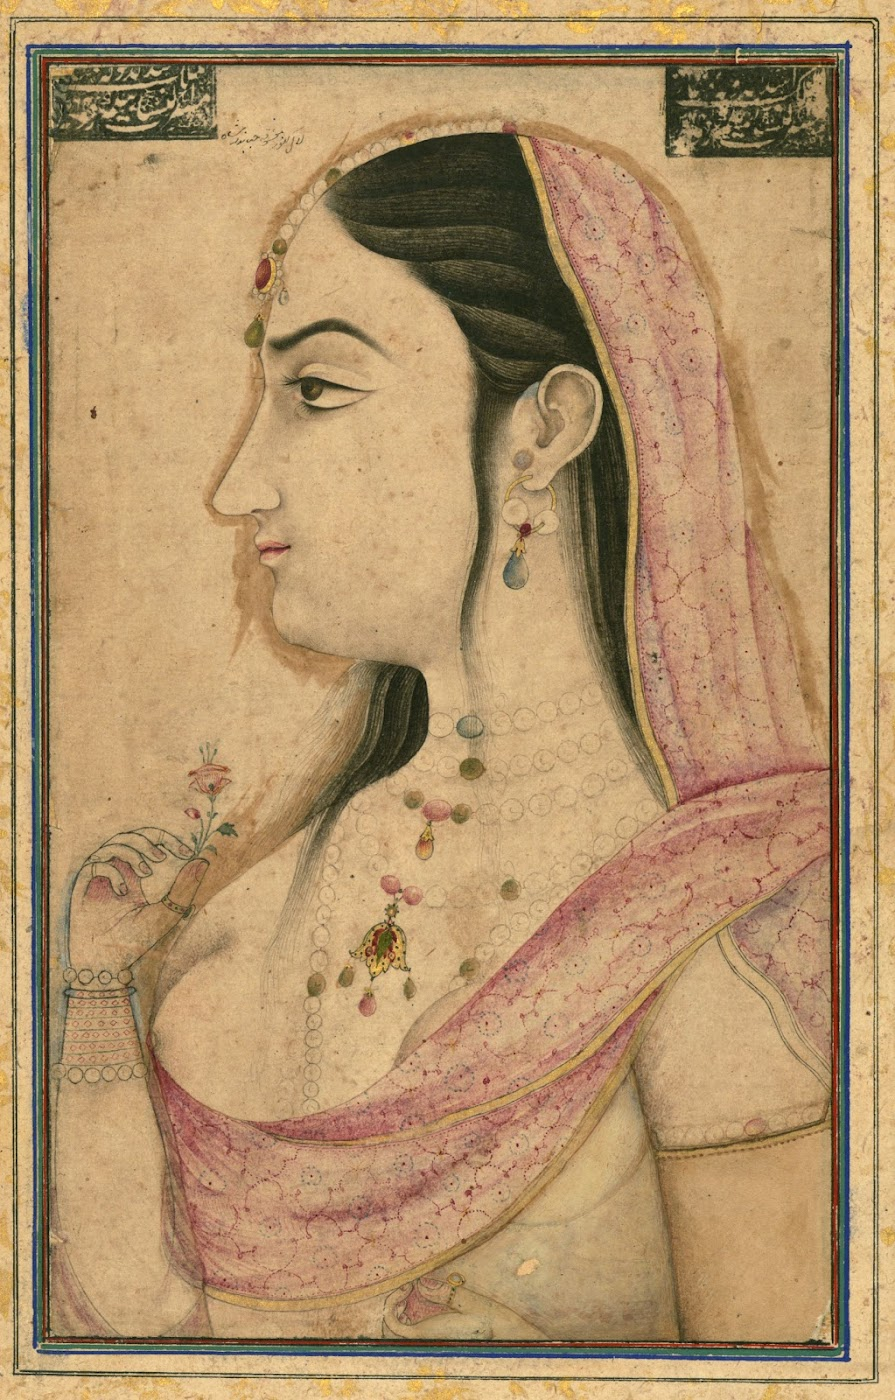 Portrait of Lal Kunwar, the beloved of the eighth Mughal Emperor Jahandār Shāh -  Mughal Painting Circa 18th century